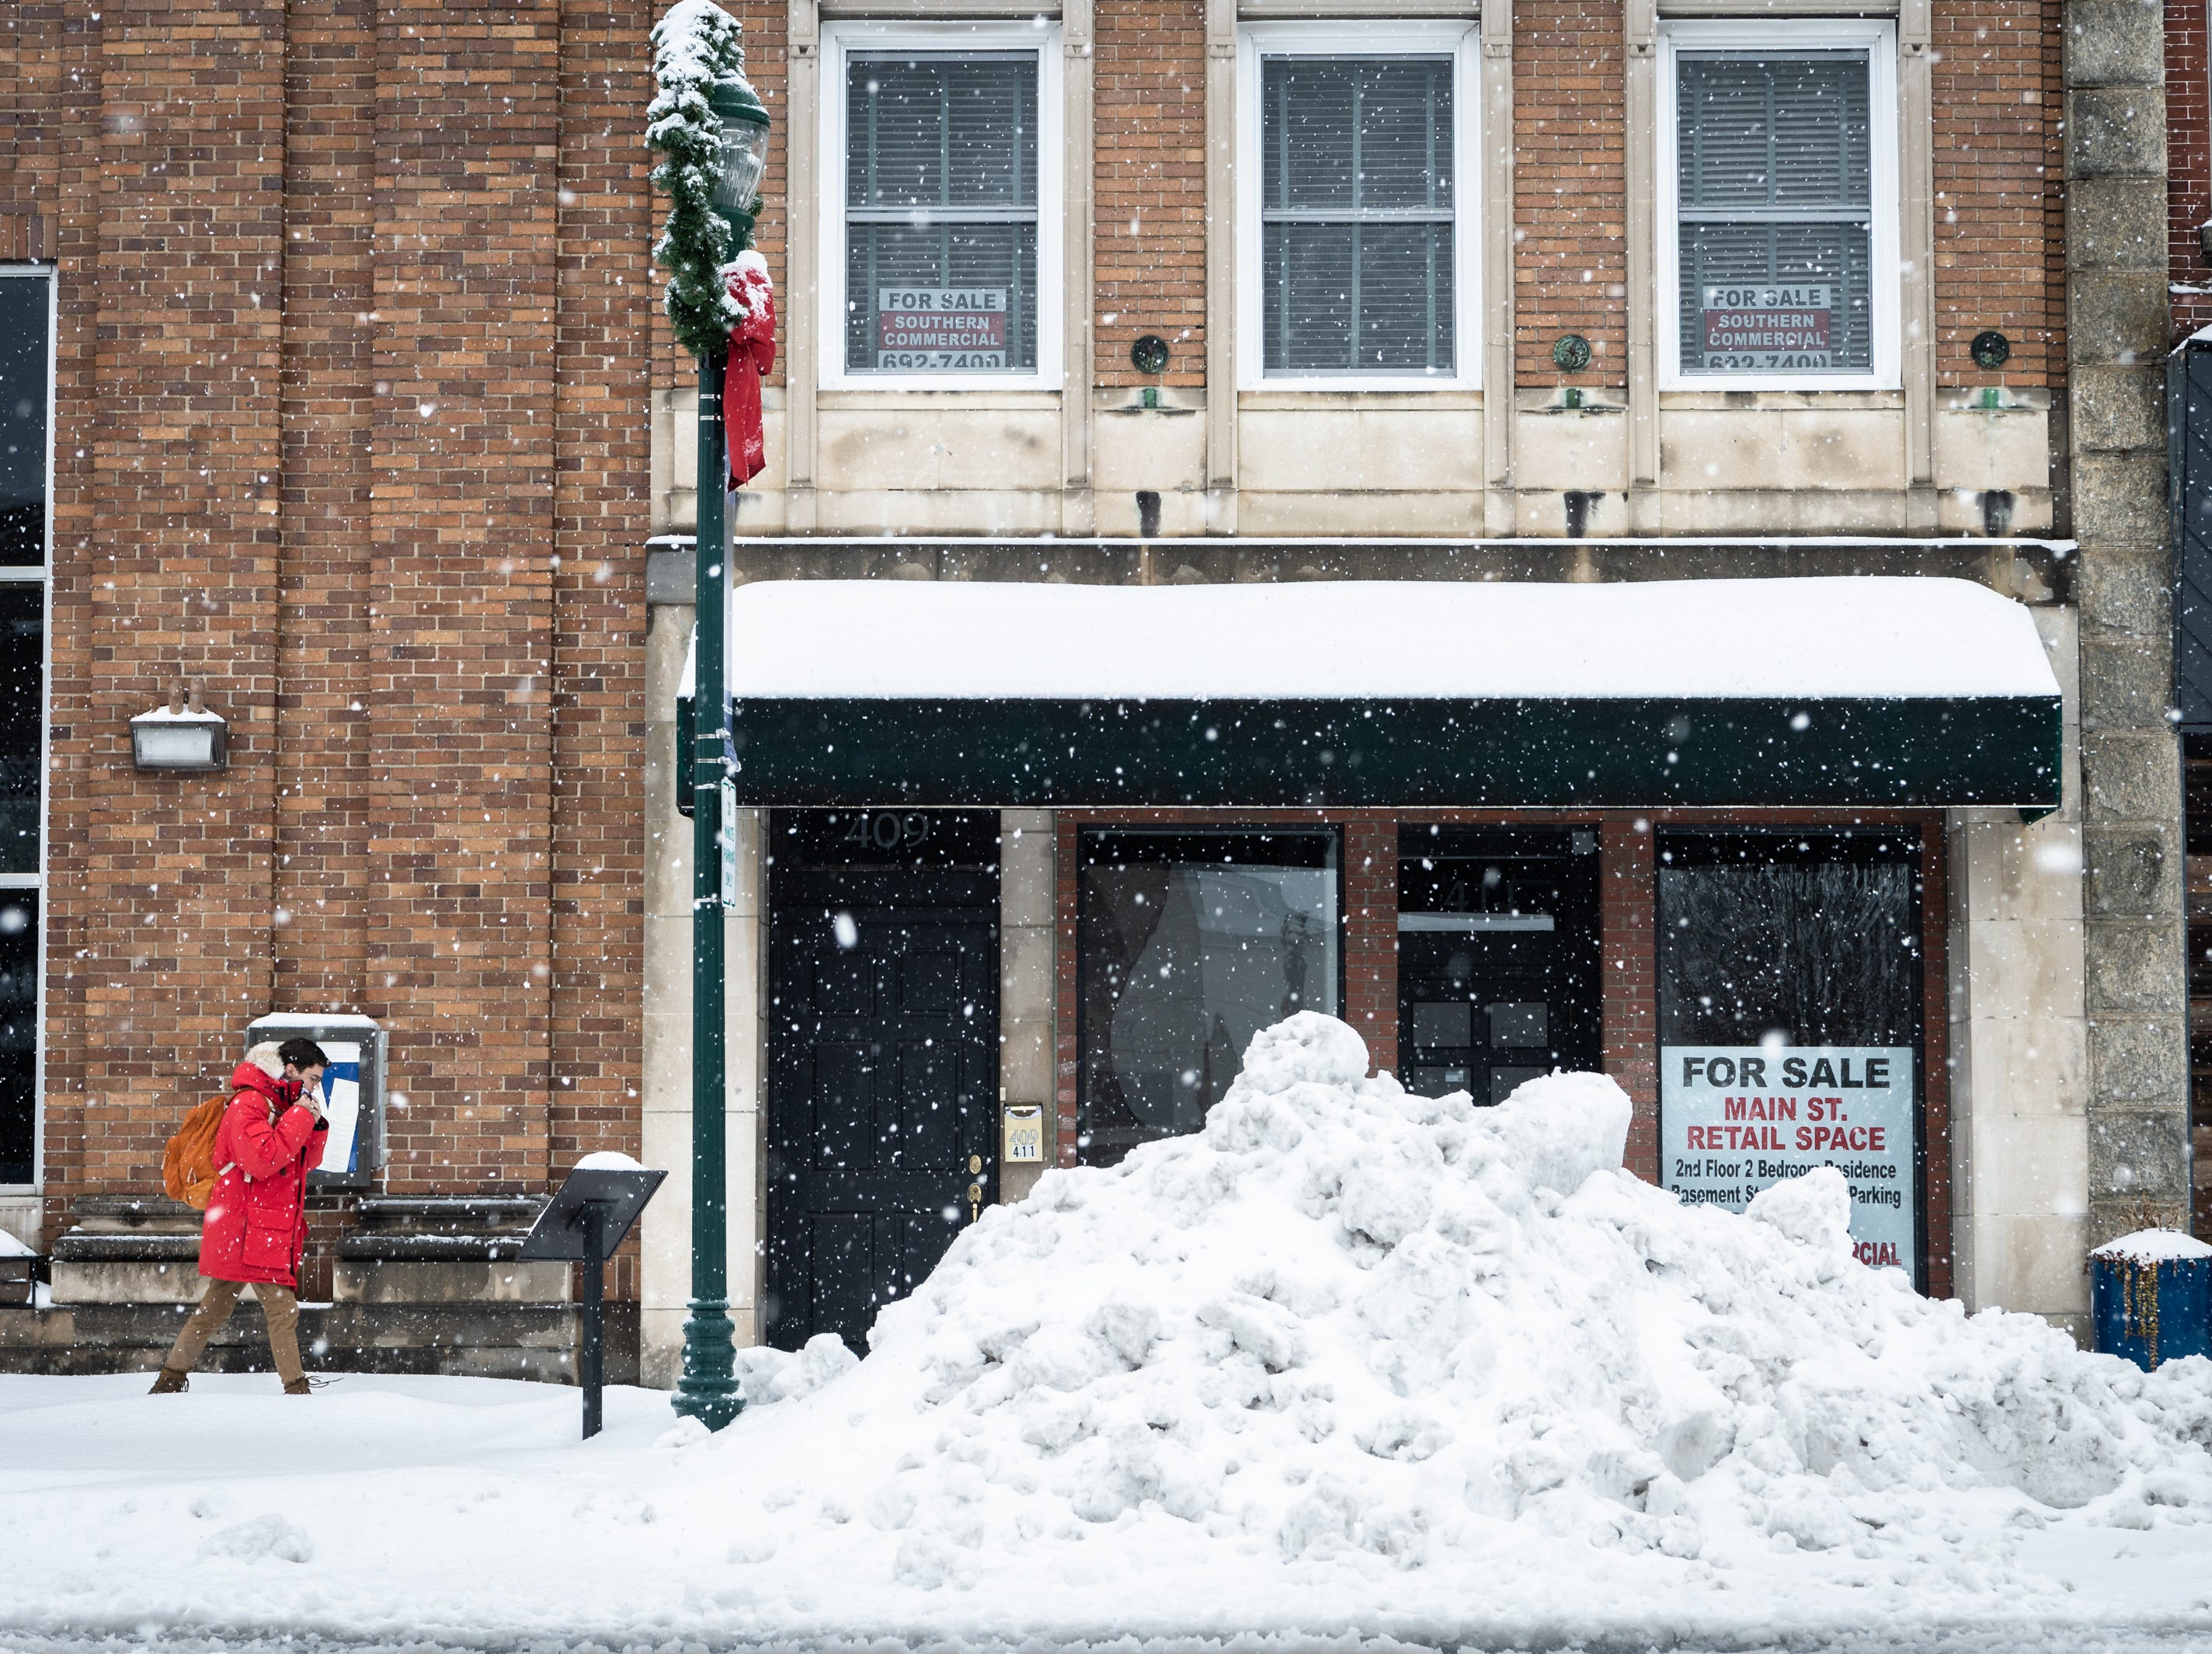 A pedestrian strolls down Main Street in Hendersonville after a night of heavy snowfall, accumulating 10-11 inches. At 5 p.m there were nearly 9,600 power outages.